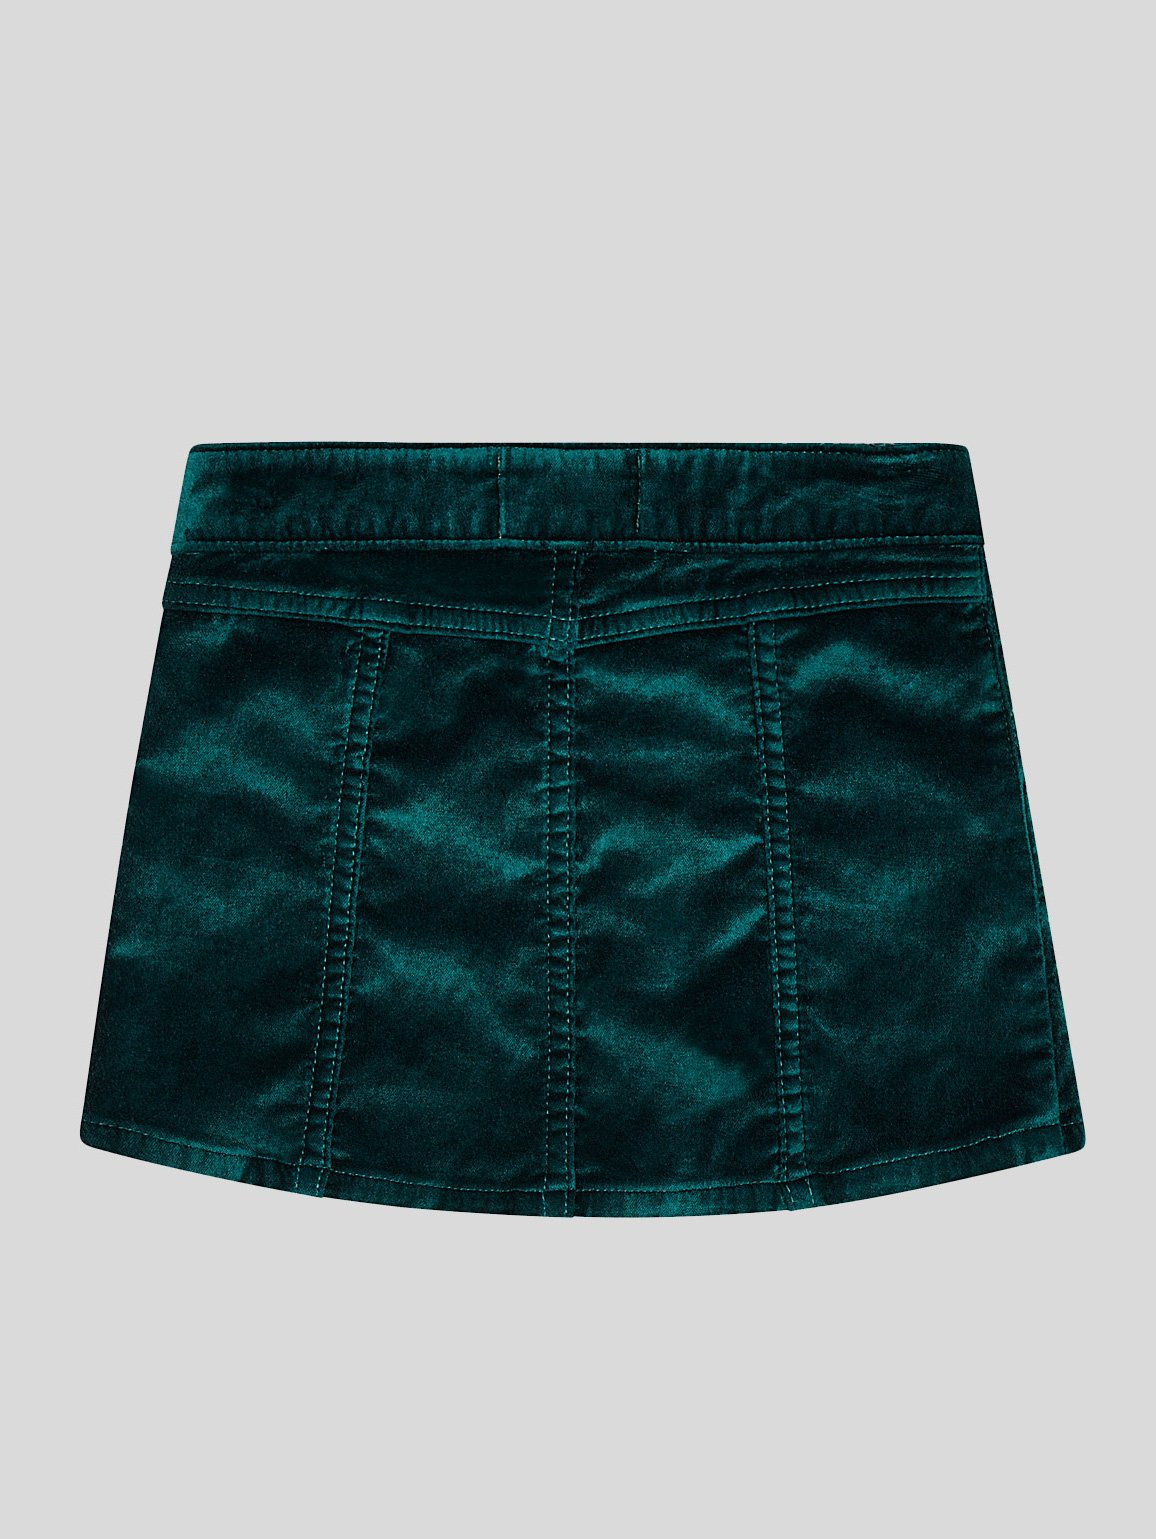 Girls - Emerald Velvet Skirt - Jenny/G Skirt Green Velvet - DL1961